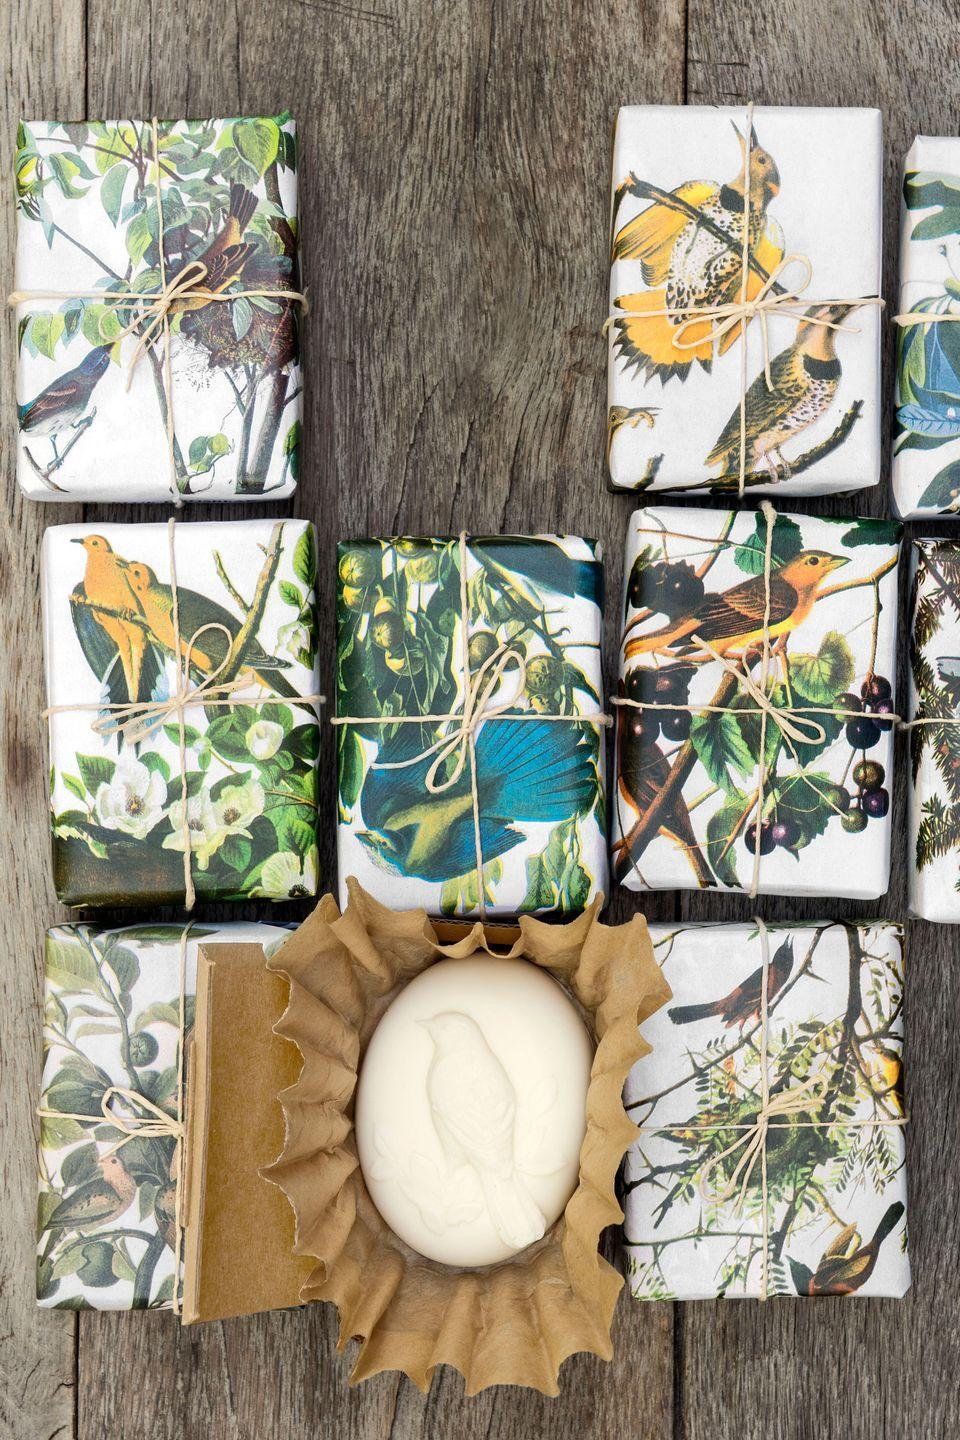 """<p>A goat's-milk formula and a beguiling bird mold—along with thoughtful packaging—result in bars that seem like they cost a fortune. First, <a href=""""https://www.amazon.com/s/ref=nb_sb_noss_2?url=search-alias%3Darts-crafts&field-keywords=goat+milk+soap+base&tag=syn-yahoo-20&ascsubtag=%5Bartid%7C10050.g.645%5Bsrc%7Cyahoo-us"""" rel=""""nofollow noopener"""" target=""""_blank"""" data-ylk=""""slk:melt the soap"""" class=""""link rapid-noclick-resp"""">melt the soap</a> according to package instructions<em>. </em>Pour the mixture into the <a href=""""https://www.amazon.com/Ozera-Cavities-Silicone-Cake-Mold/dp/B00Q7T5H38?tag=syn-yahoo-20&ascsubtag=%5Bartid%7C10050.g.645%5Bsrc%7Cyahoo-us"""" rel=""""nofollow noopener"""" target=""""_blank"""" data-ylk=""""slk:silicone mold"""" class=""""link rapid-noclick-resp"""">silicone mold</a><em>. </em>Let it set for four hours, then pop out your bar. To wrap these soaps, we used unbleached coffee filters, <a href=""""http://www.sunshinecontainer.com/"""" rel=""""nofollow noopener"""" target=""""_blank"""" data-ylk=""""slk:rectangular cardboard boxes"""" class=""""link rapid-noclick-resp"""">rectangular cardboard boxes</a><em>, </em>and paper color-copied from a vintage bird guide. Enclose each oval soap in a coffee filter before boxing—the ruffles gather neatly around curves.</p><p><strong><a class=""""link rapid-noclick-resp"""" href=""""https://www.amazon.com/s/ref=nb_sb_noss_2?url=search-alias%3Darts-crafts&field-keywords=goat+milk+soap+base&tag=syn-yahoo-20&ascsubtag=%5Bartid%7C10050.g.645%5Bsrc%7Cyahoo-us"""" rel=""""nofollow noopener"""" target=""""_blank"""" data-ylk=""""slk:SHOP GOAT'S MILK BASE"""">SHOP GOAT'S MILK BASE</a></strong></p>"""